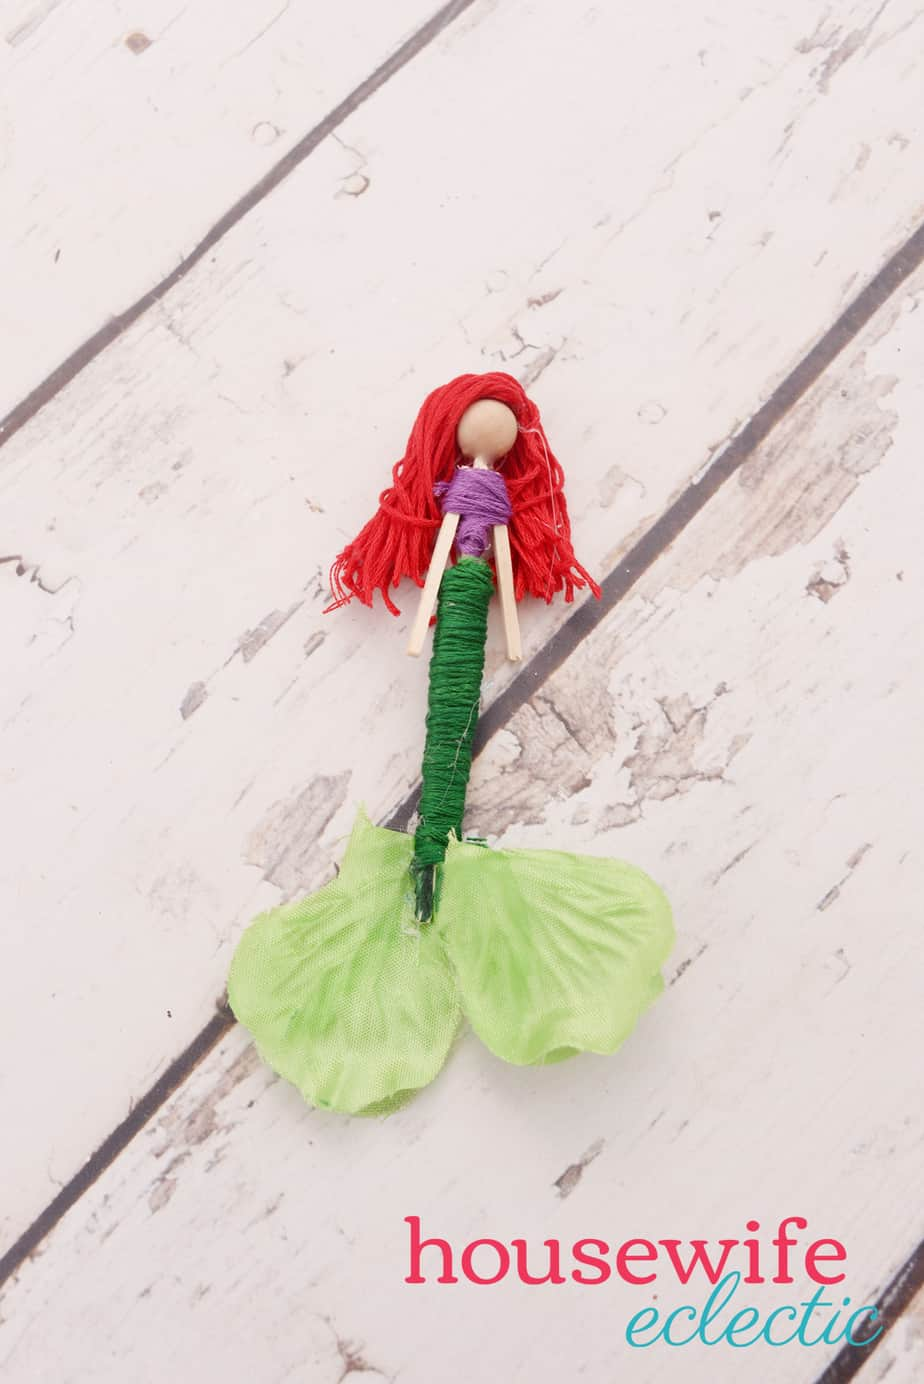 Housewife Eclectic: DIY Mermaid Ariel Worry Dolls